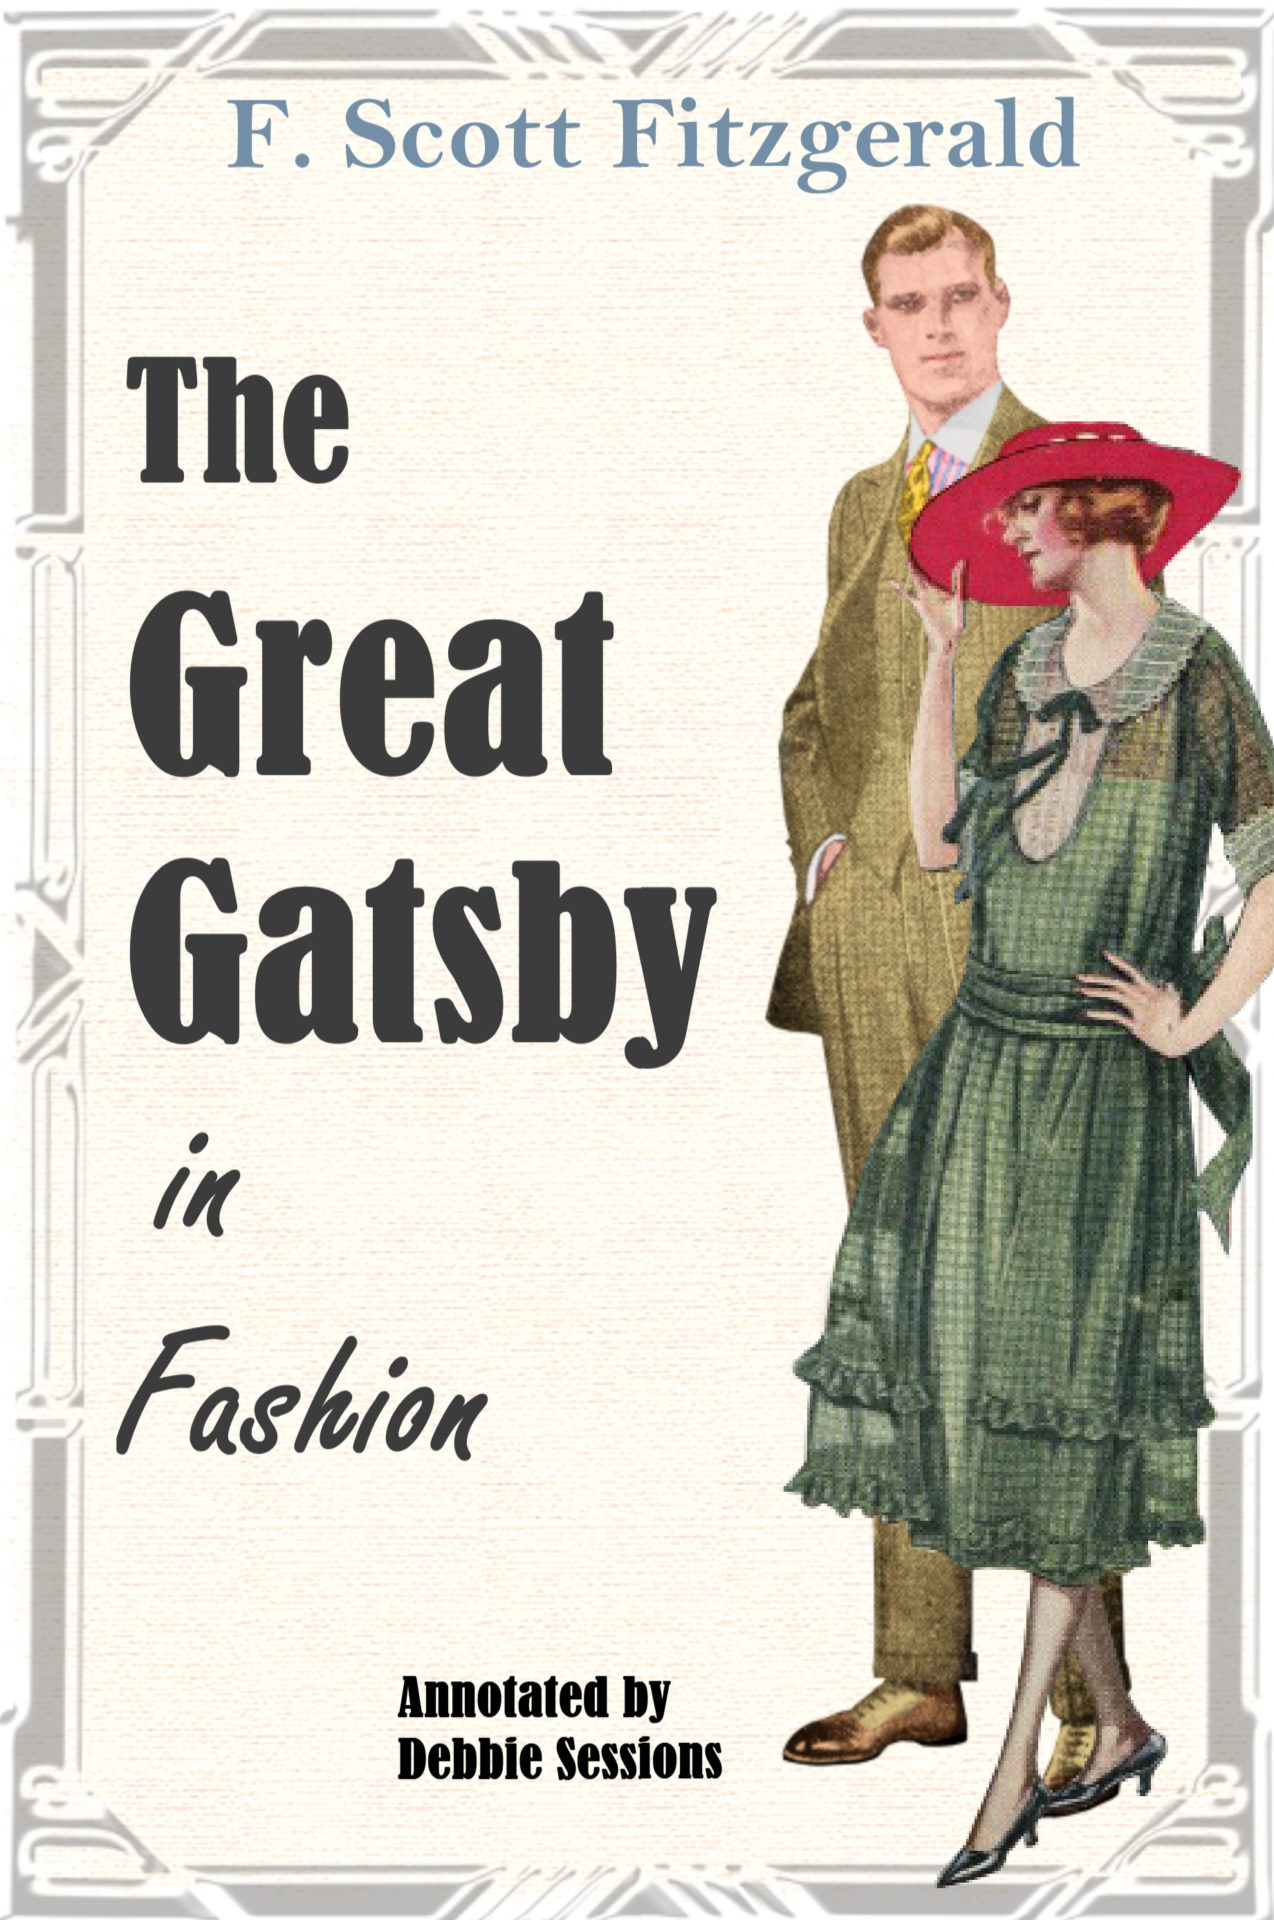 1920s Fashion & Clothing | Roaring 20s Attire Great Gatsby in Fashion eBook $2.99 AT vintagedancer.com